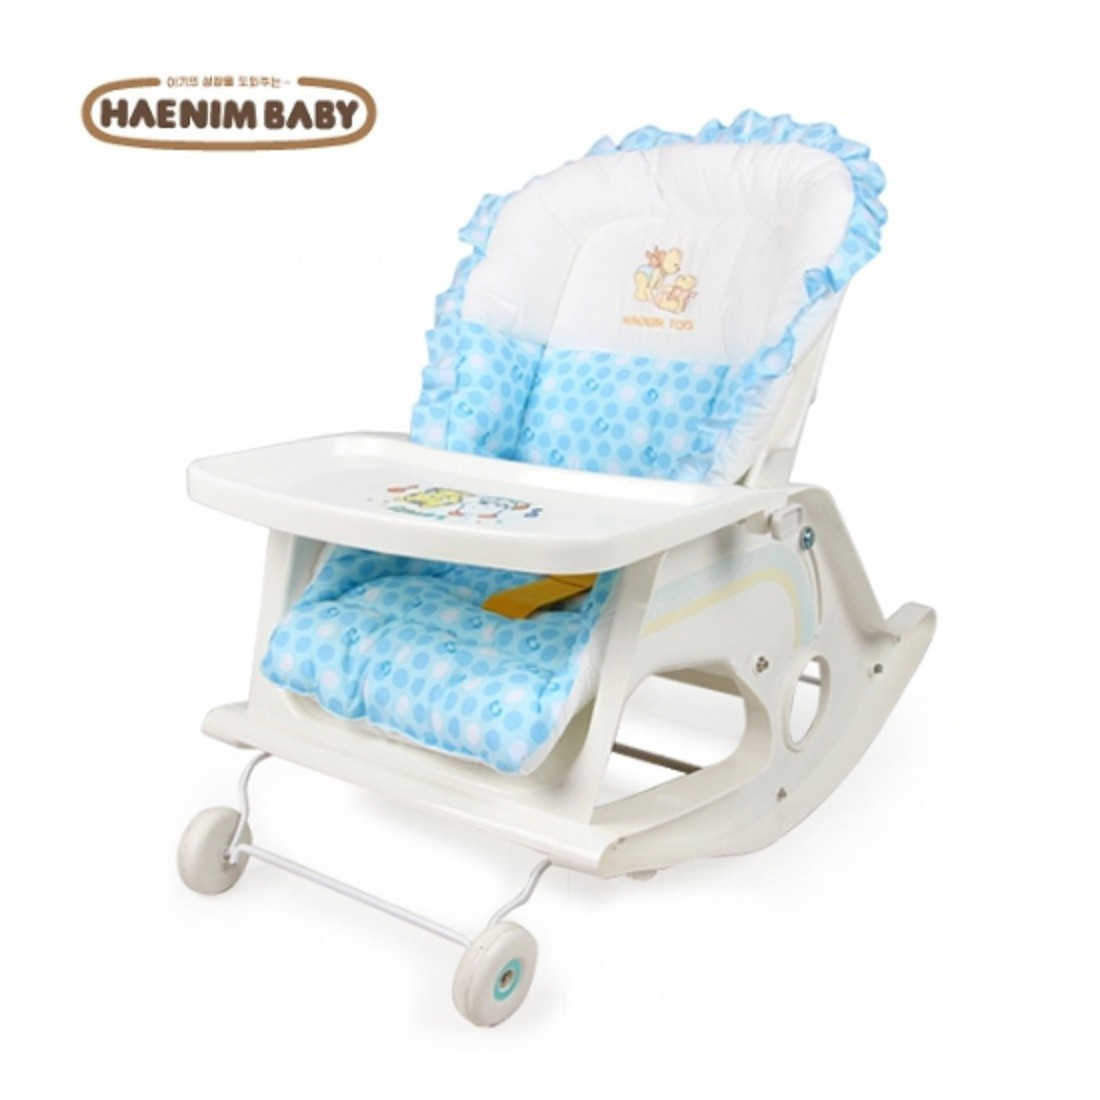 Swing Bed  sc 1 st  Baby Center India & Baby Royal Rocker with Reclining bed - Baby Center India islam-shia.org